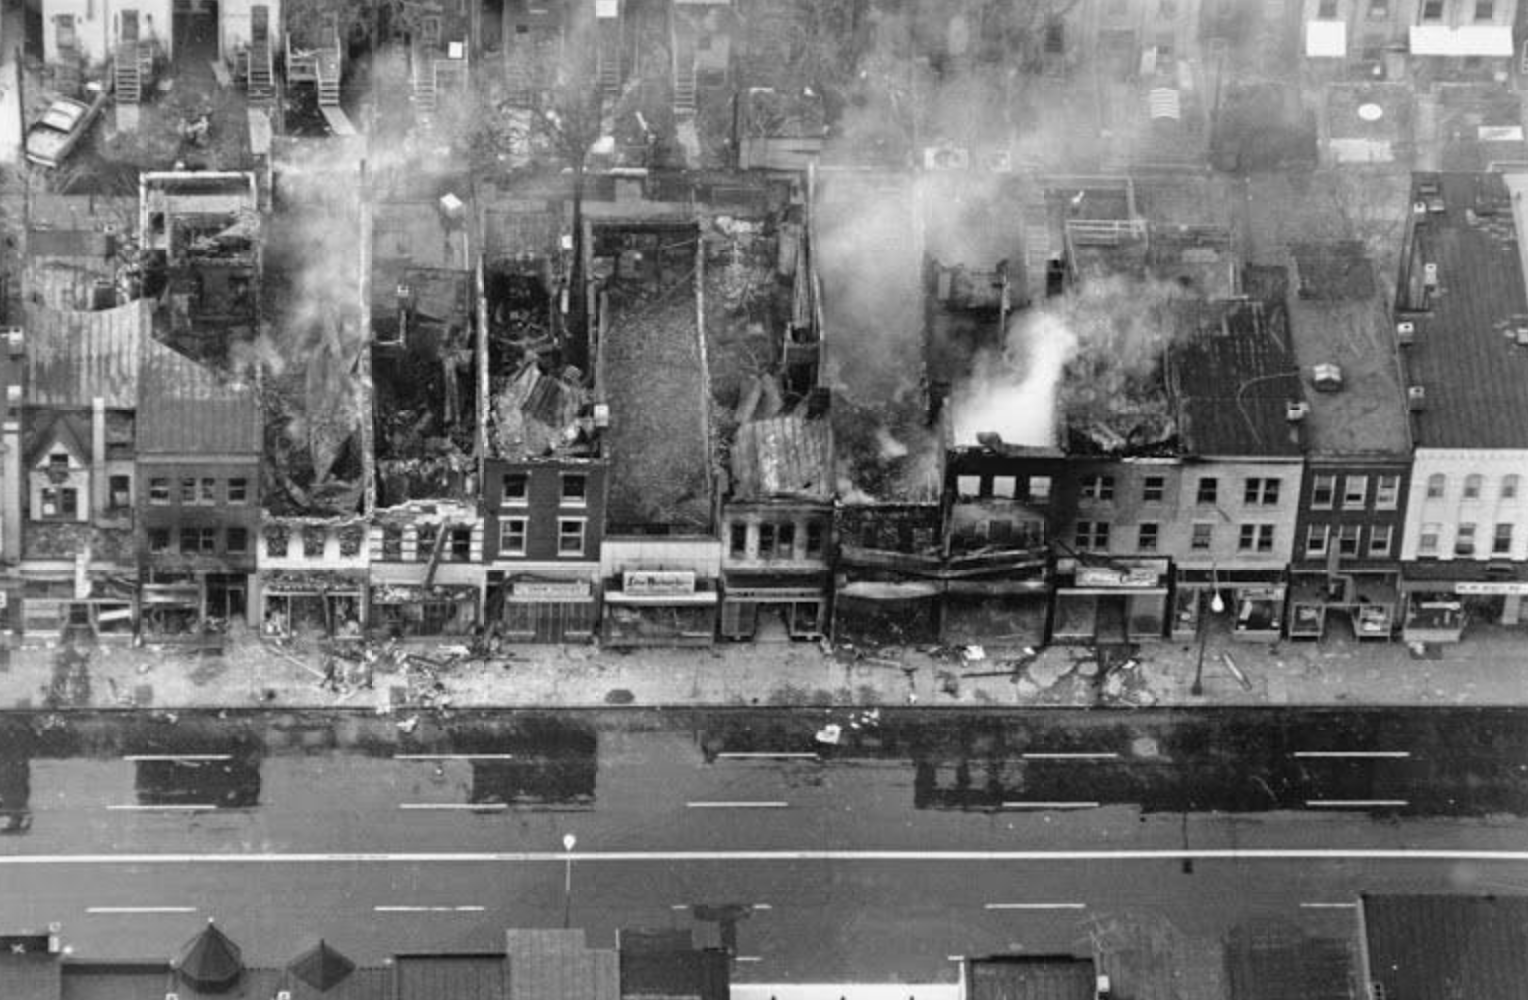 Burning buildings along H Street NE, Washington DC, April 5, 1968 (AP Photo)